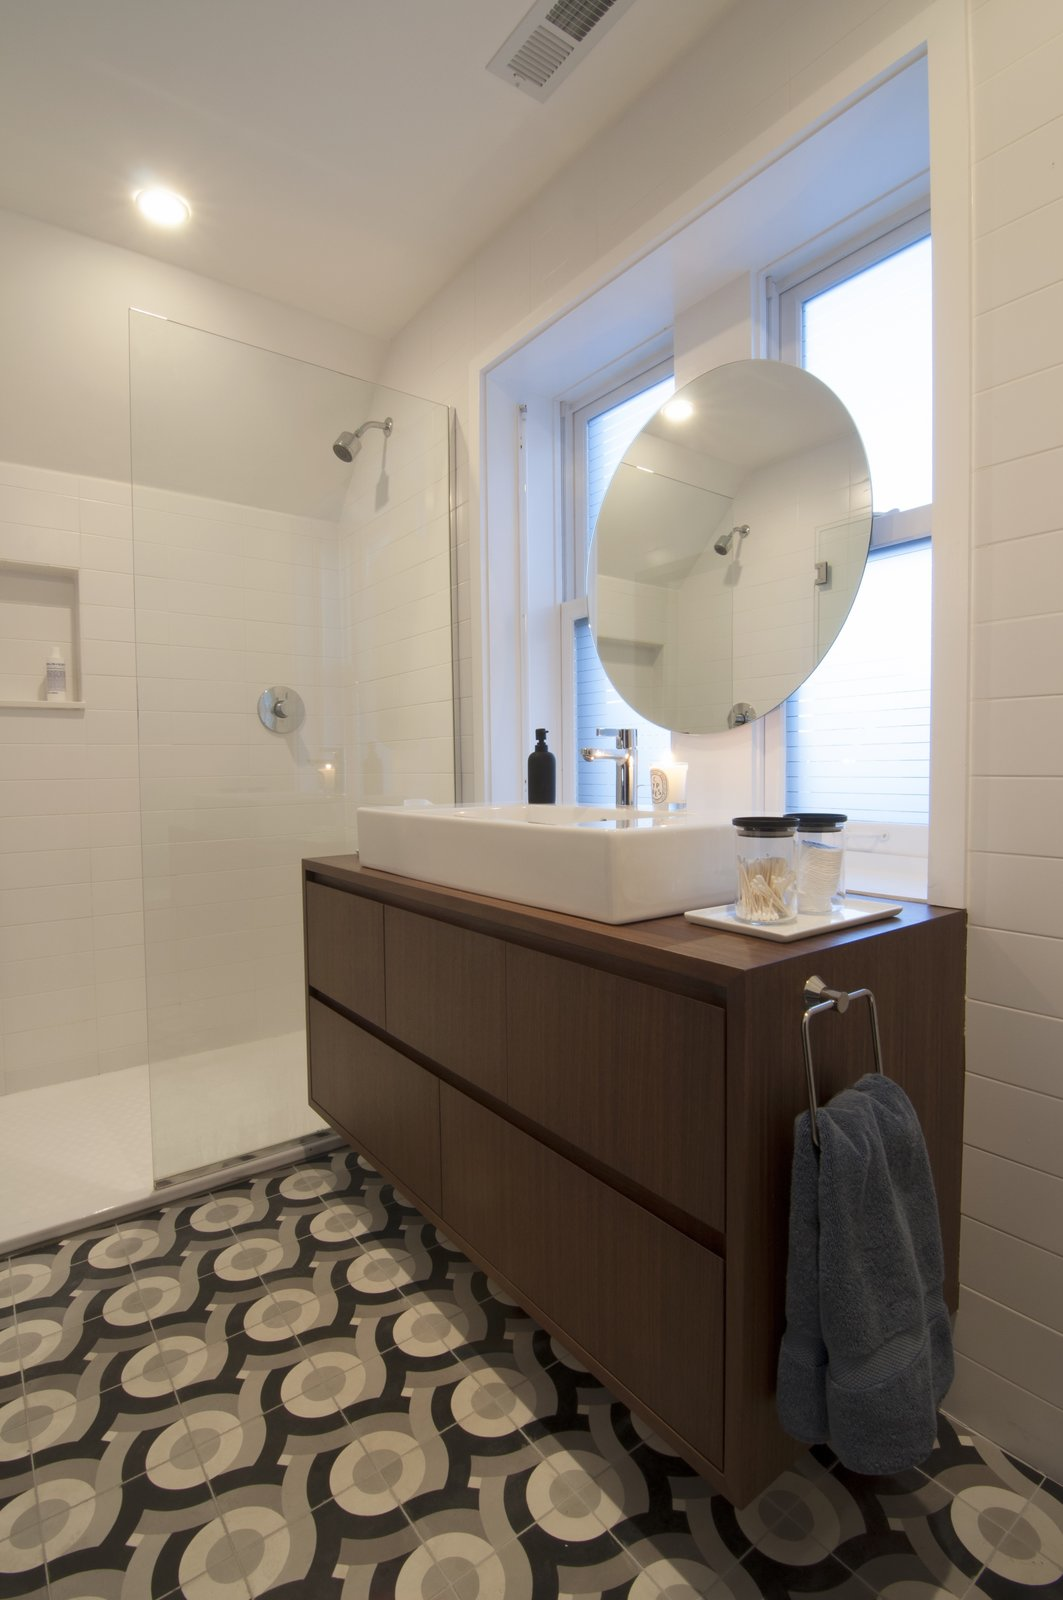 """Shively describes himself as """"big on graphics"""" and designed these tiles, produced by Original Mission Tile in San Luis, Mexico, to add his own flair to the master bathroom. A simple floating vanity and minimalist shower let the custom tilework take center stage.  Photo 8 of 8 in A Chicago Renovation Taps Into its Attic to Almost Double its Square Footage"""